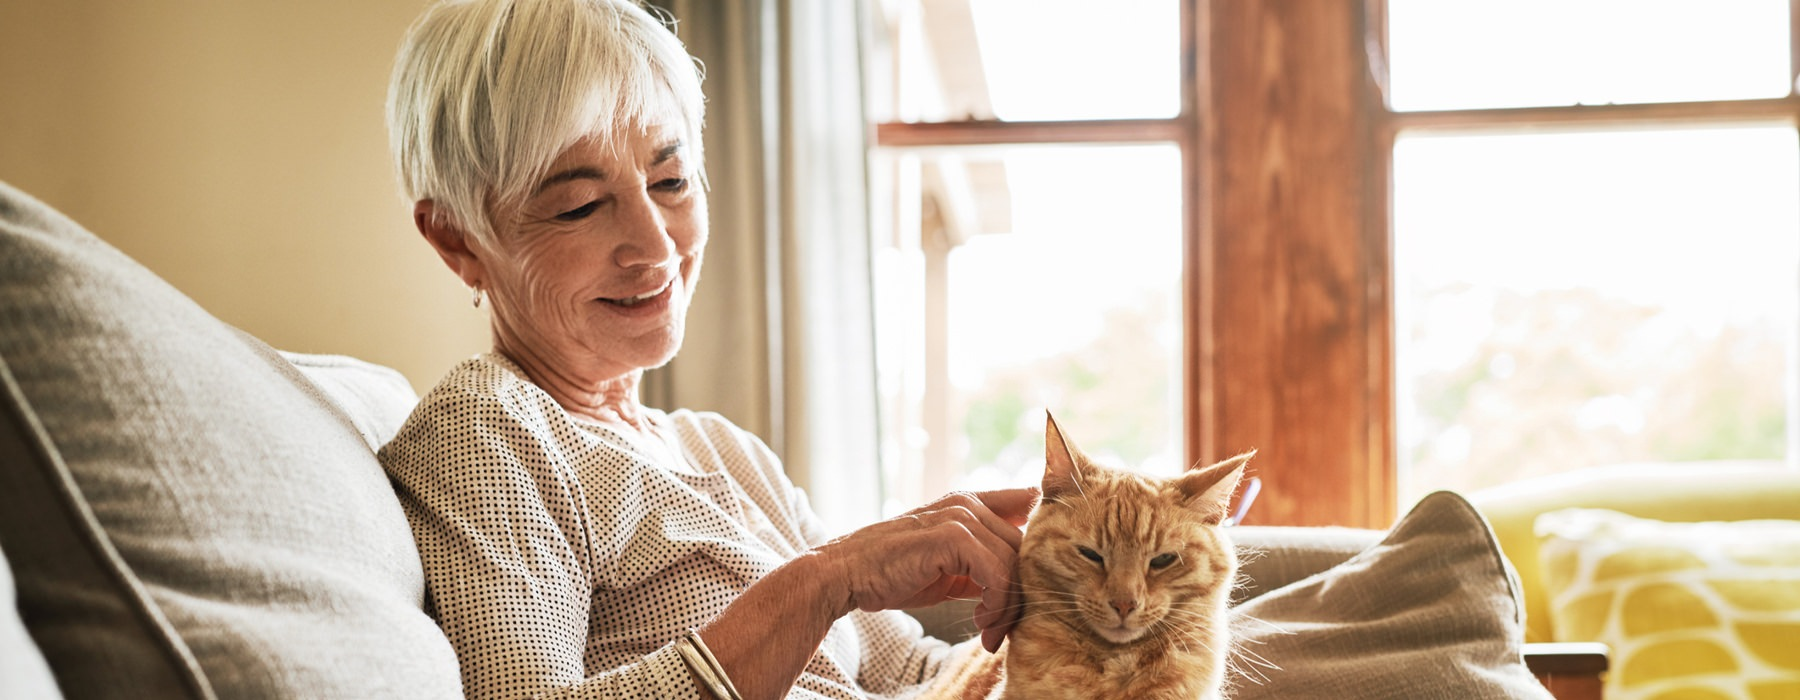 older lady sits on her couch and pets her cat